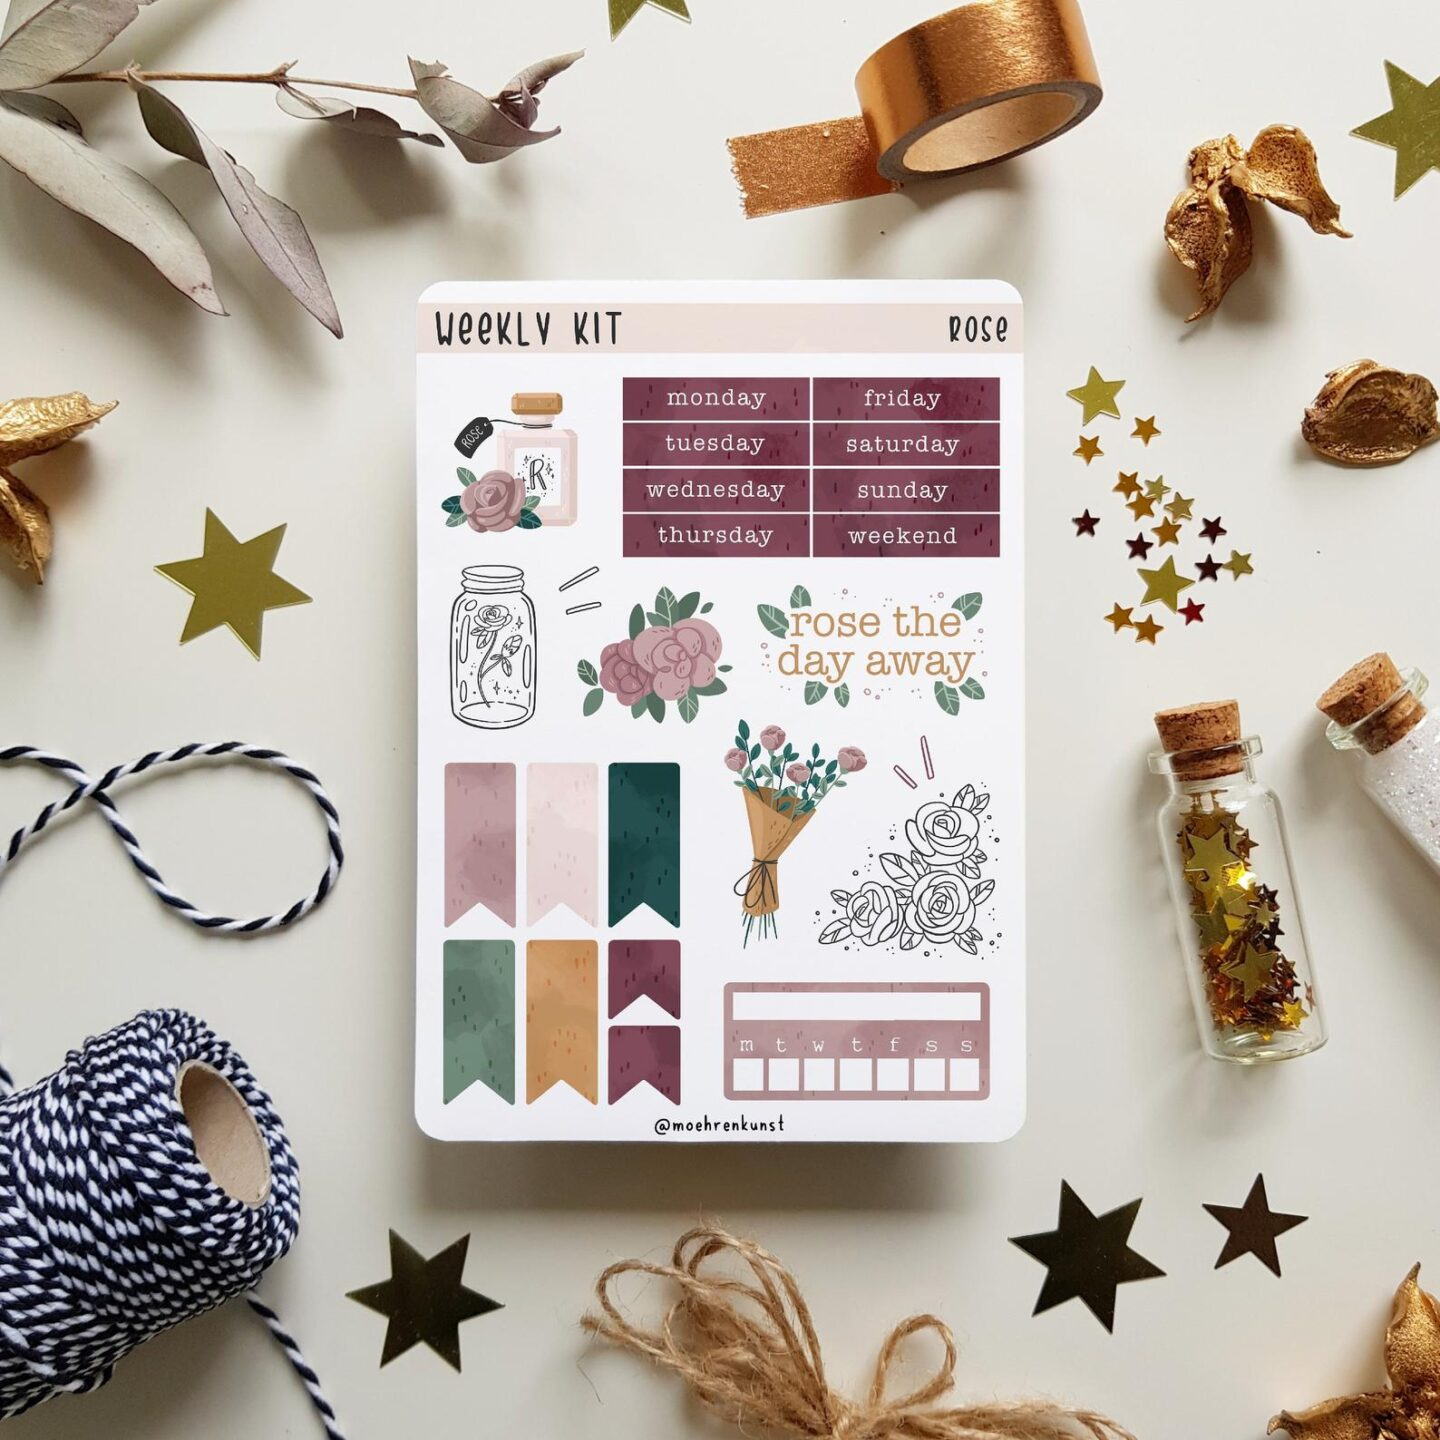 Stickers are a bullet journal lovers best friend! Give the journal aficionado in your life a pack of stickers to design their favorite pages in their planner